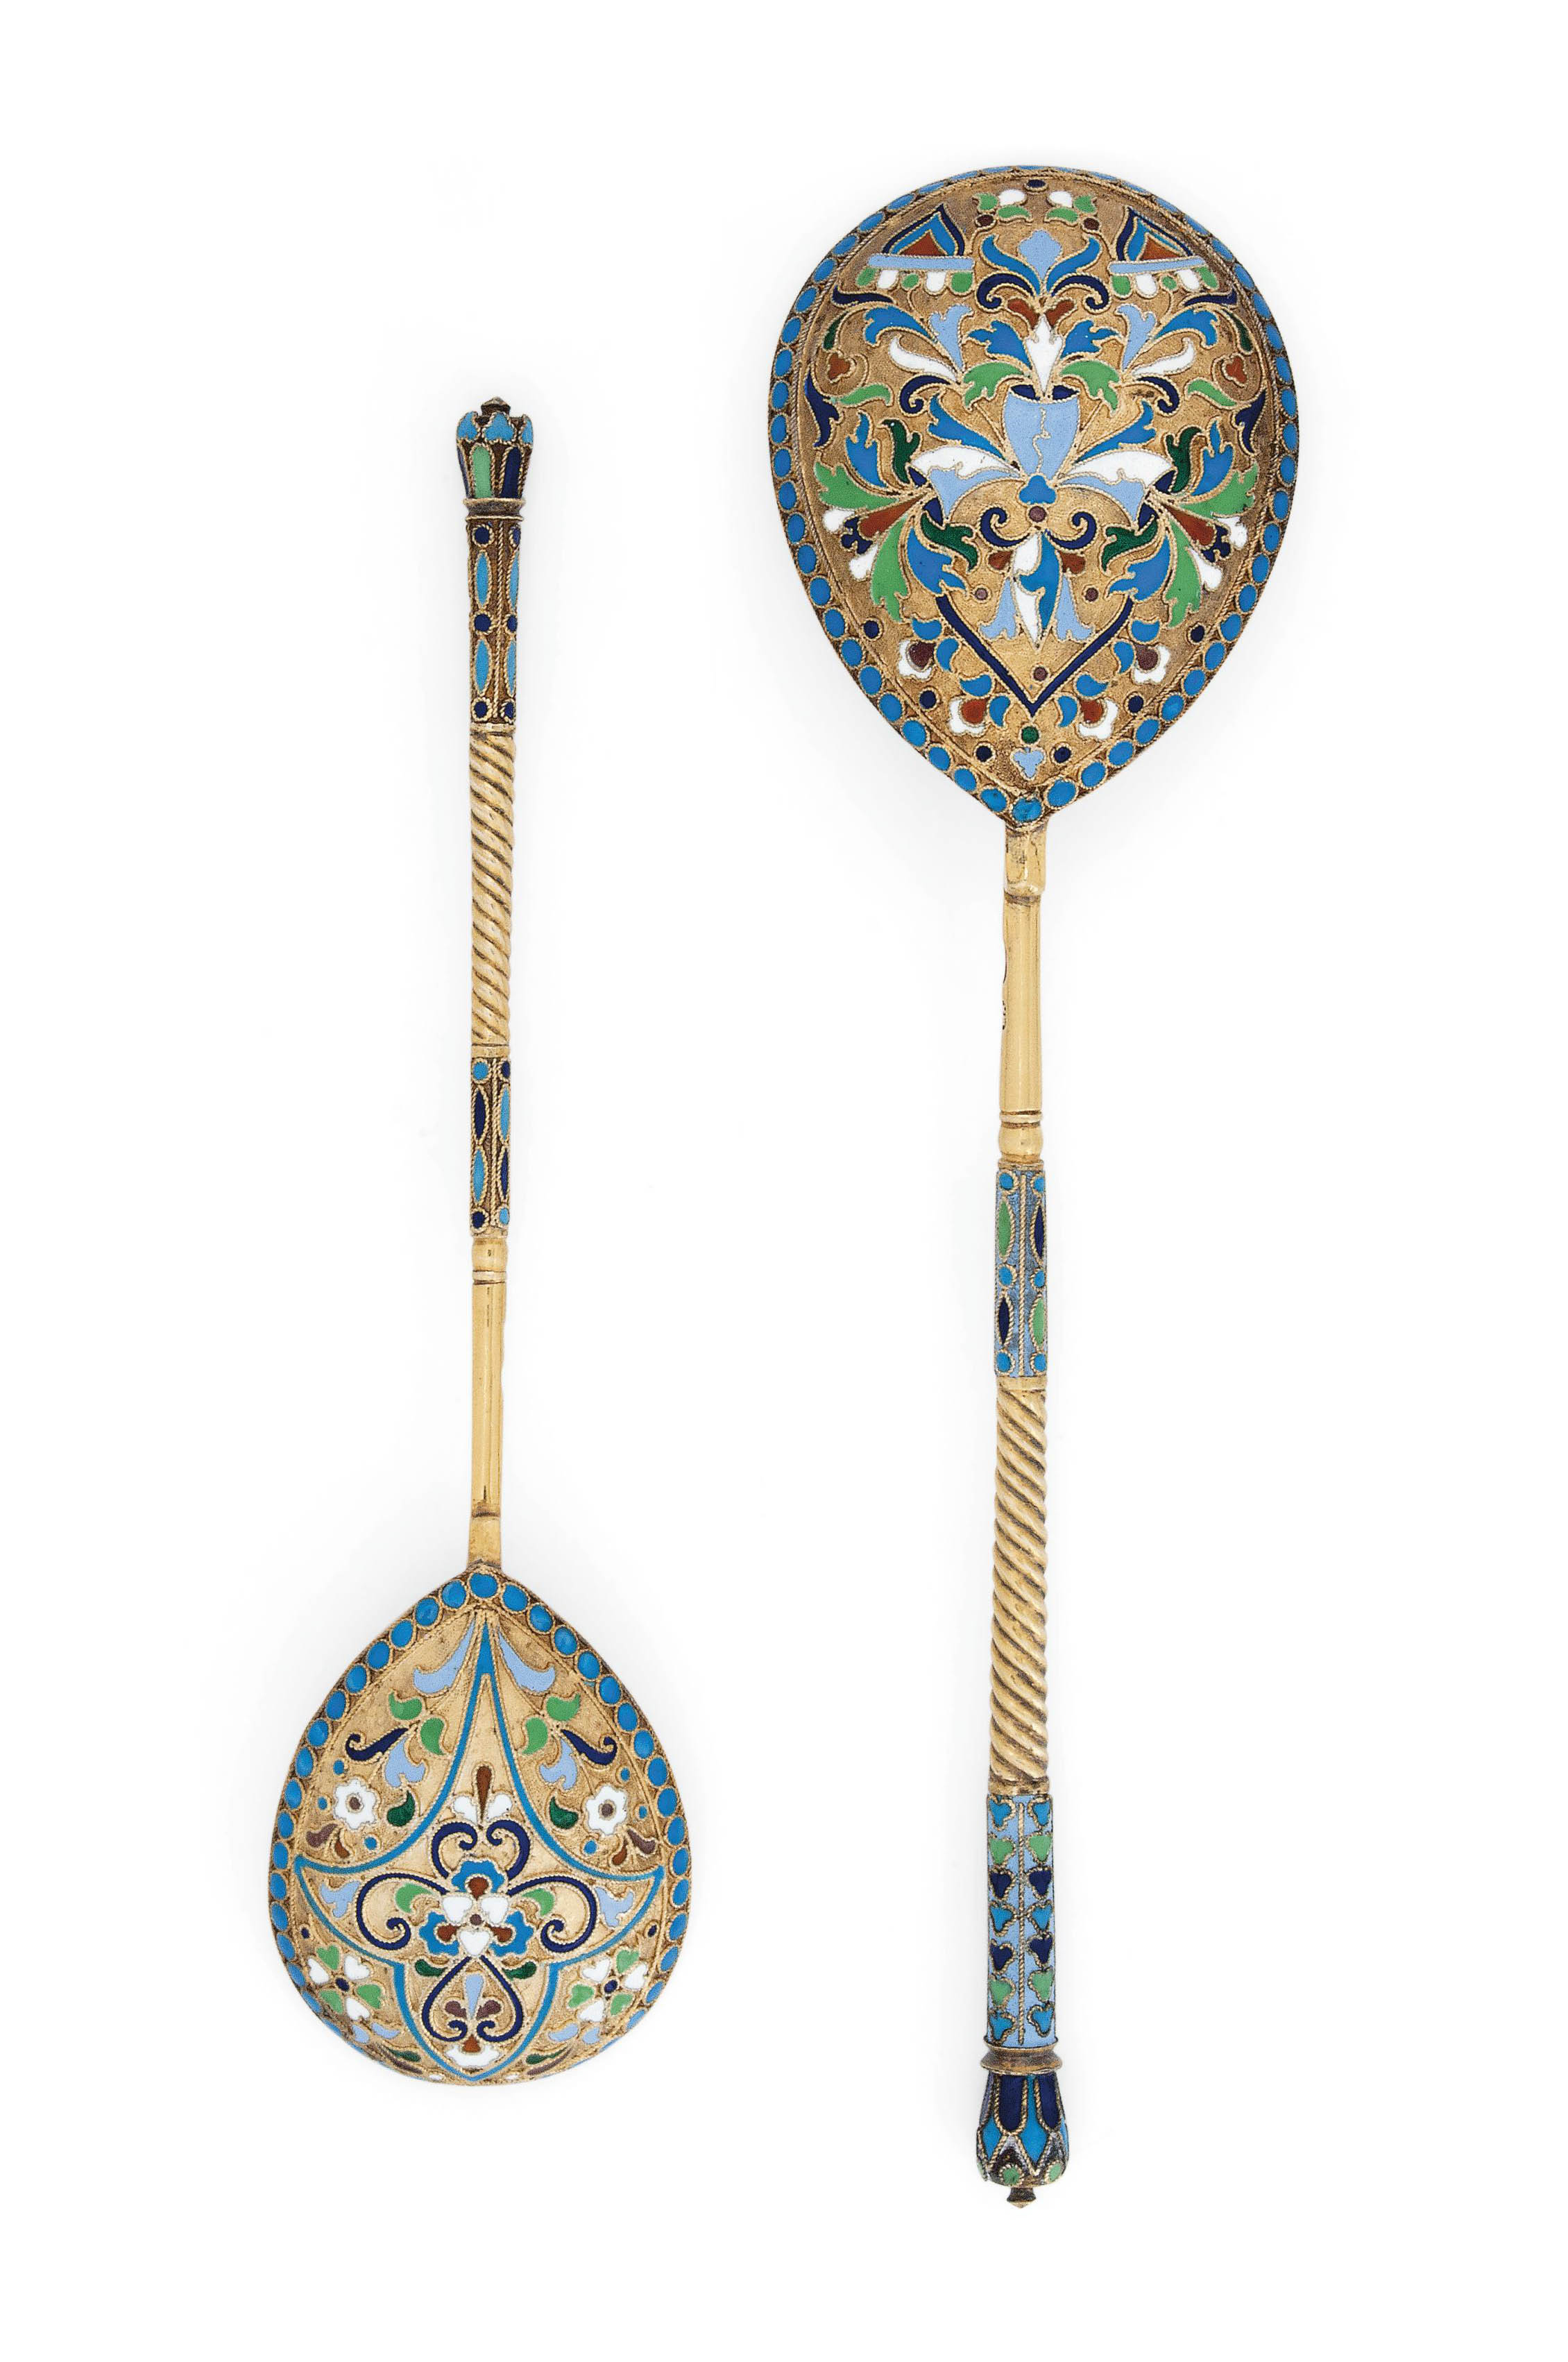 A GRADUATED PAIR OF RUSSIAN SILVER-GILT AND CLOISONNE ENAMEL SPOONS